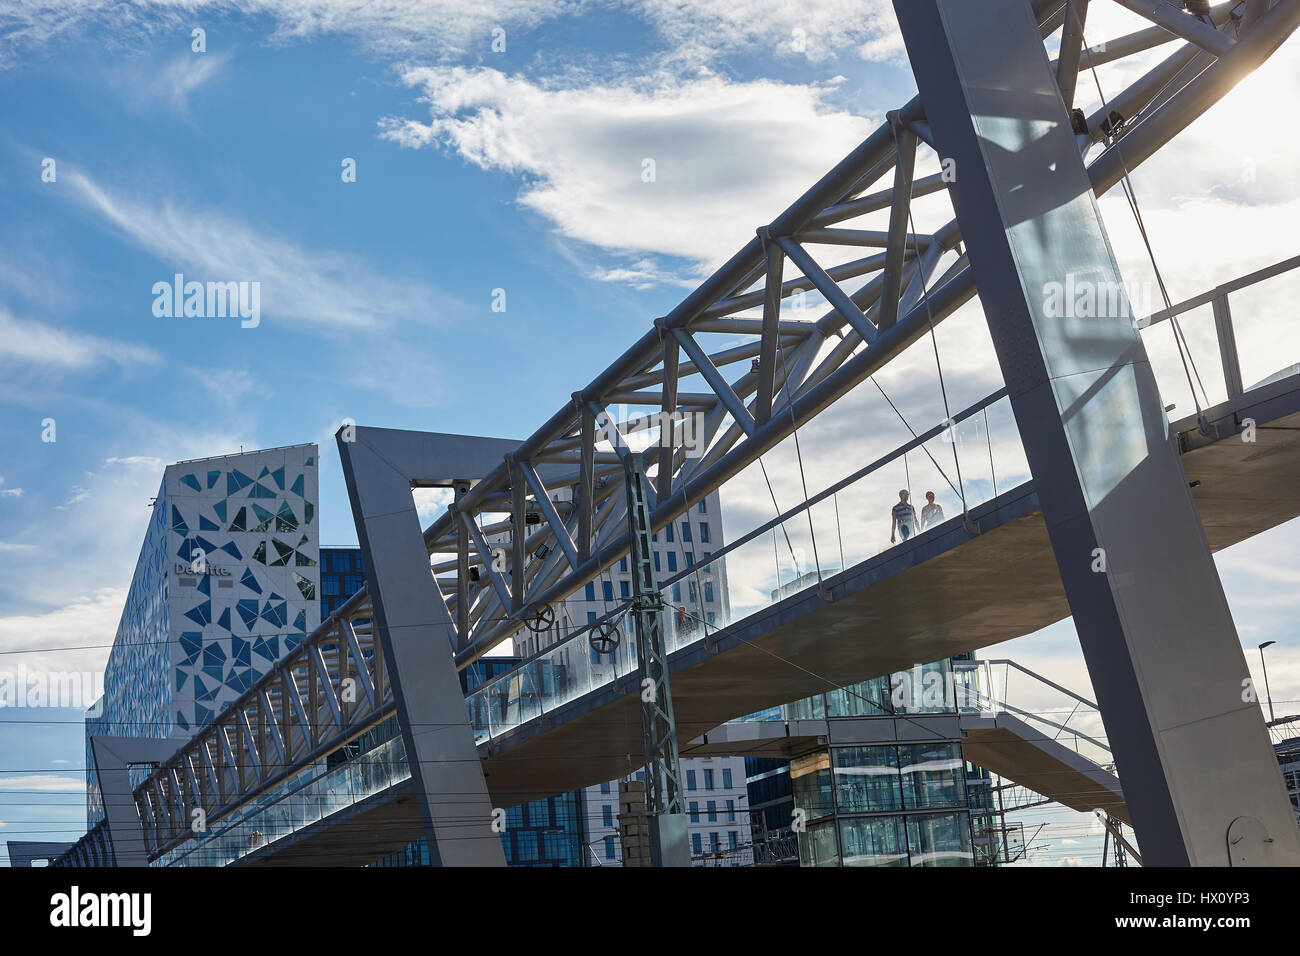 Akrobaten ('the acrobat') is a pedestrian bridge that stretches across the tracks of Oslo Central Station, - Stock Image